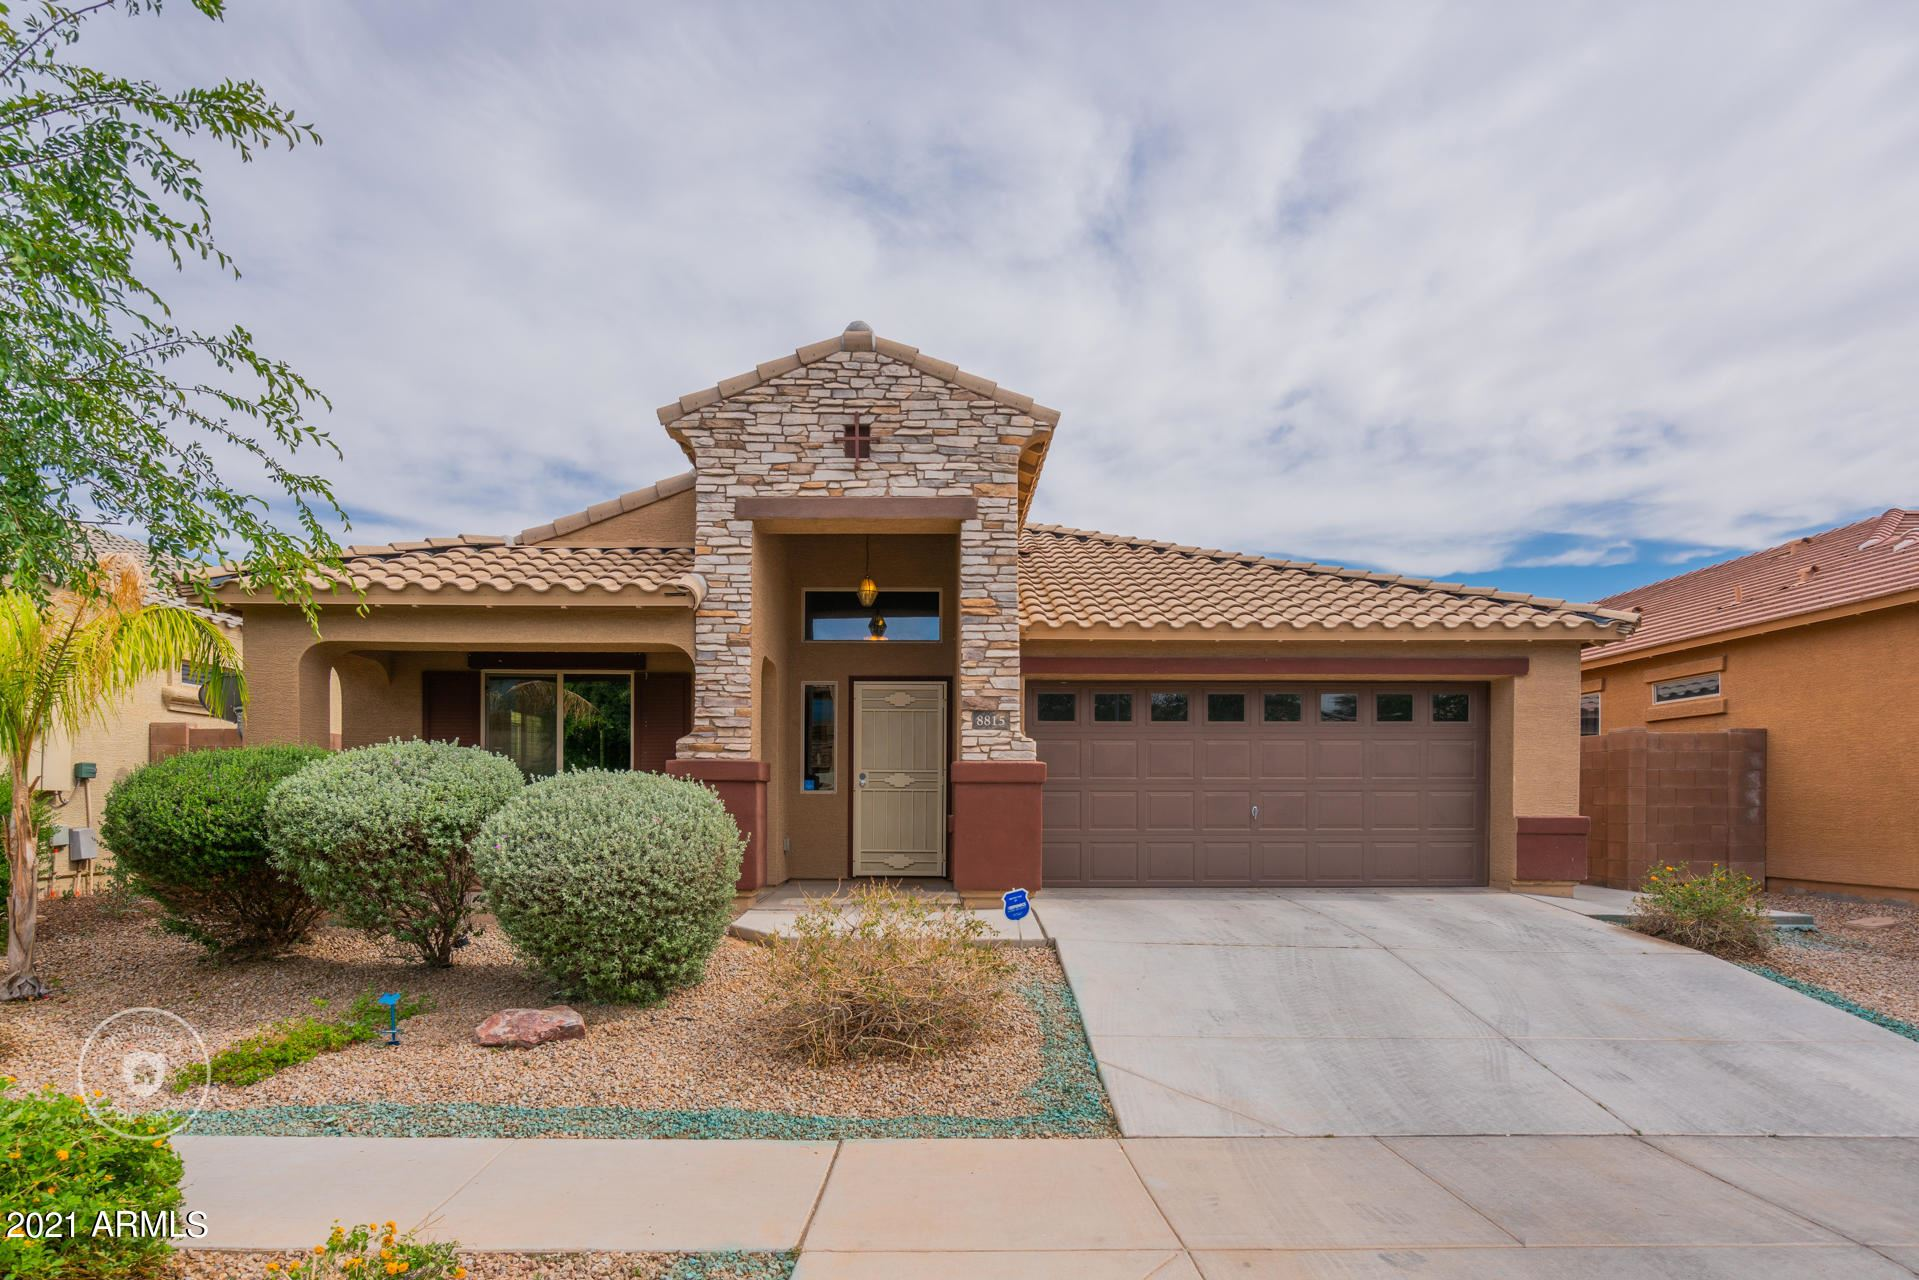 Photo of 8815 W PIONEER Street, Tolleson, AZ 85353 (MLS # 6232048)